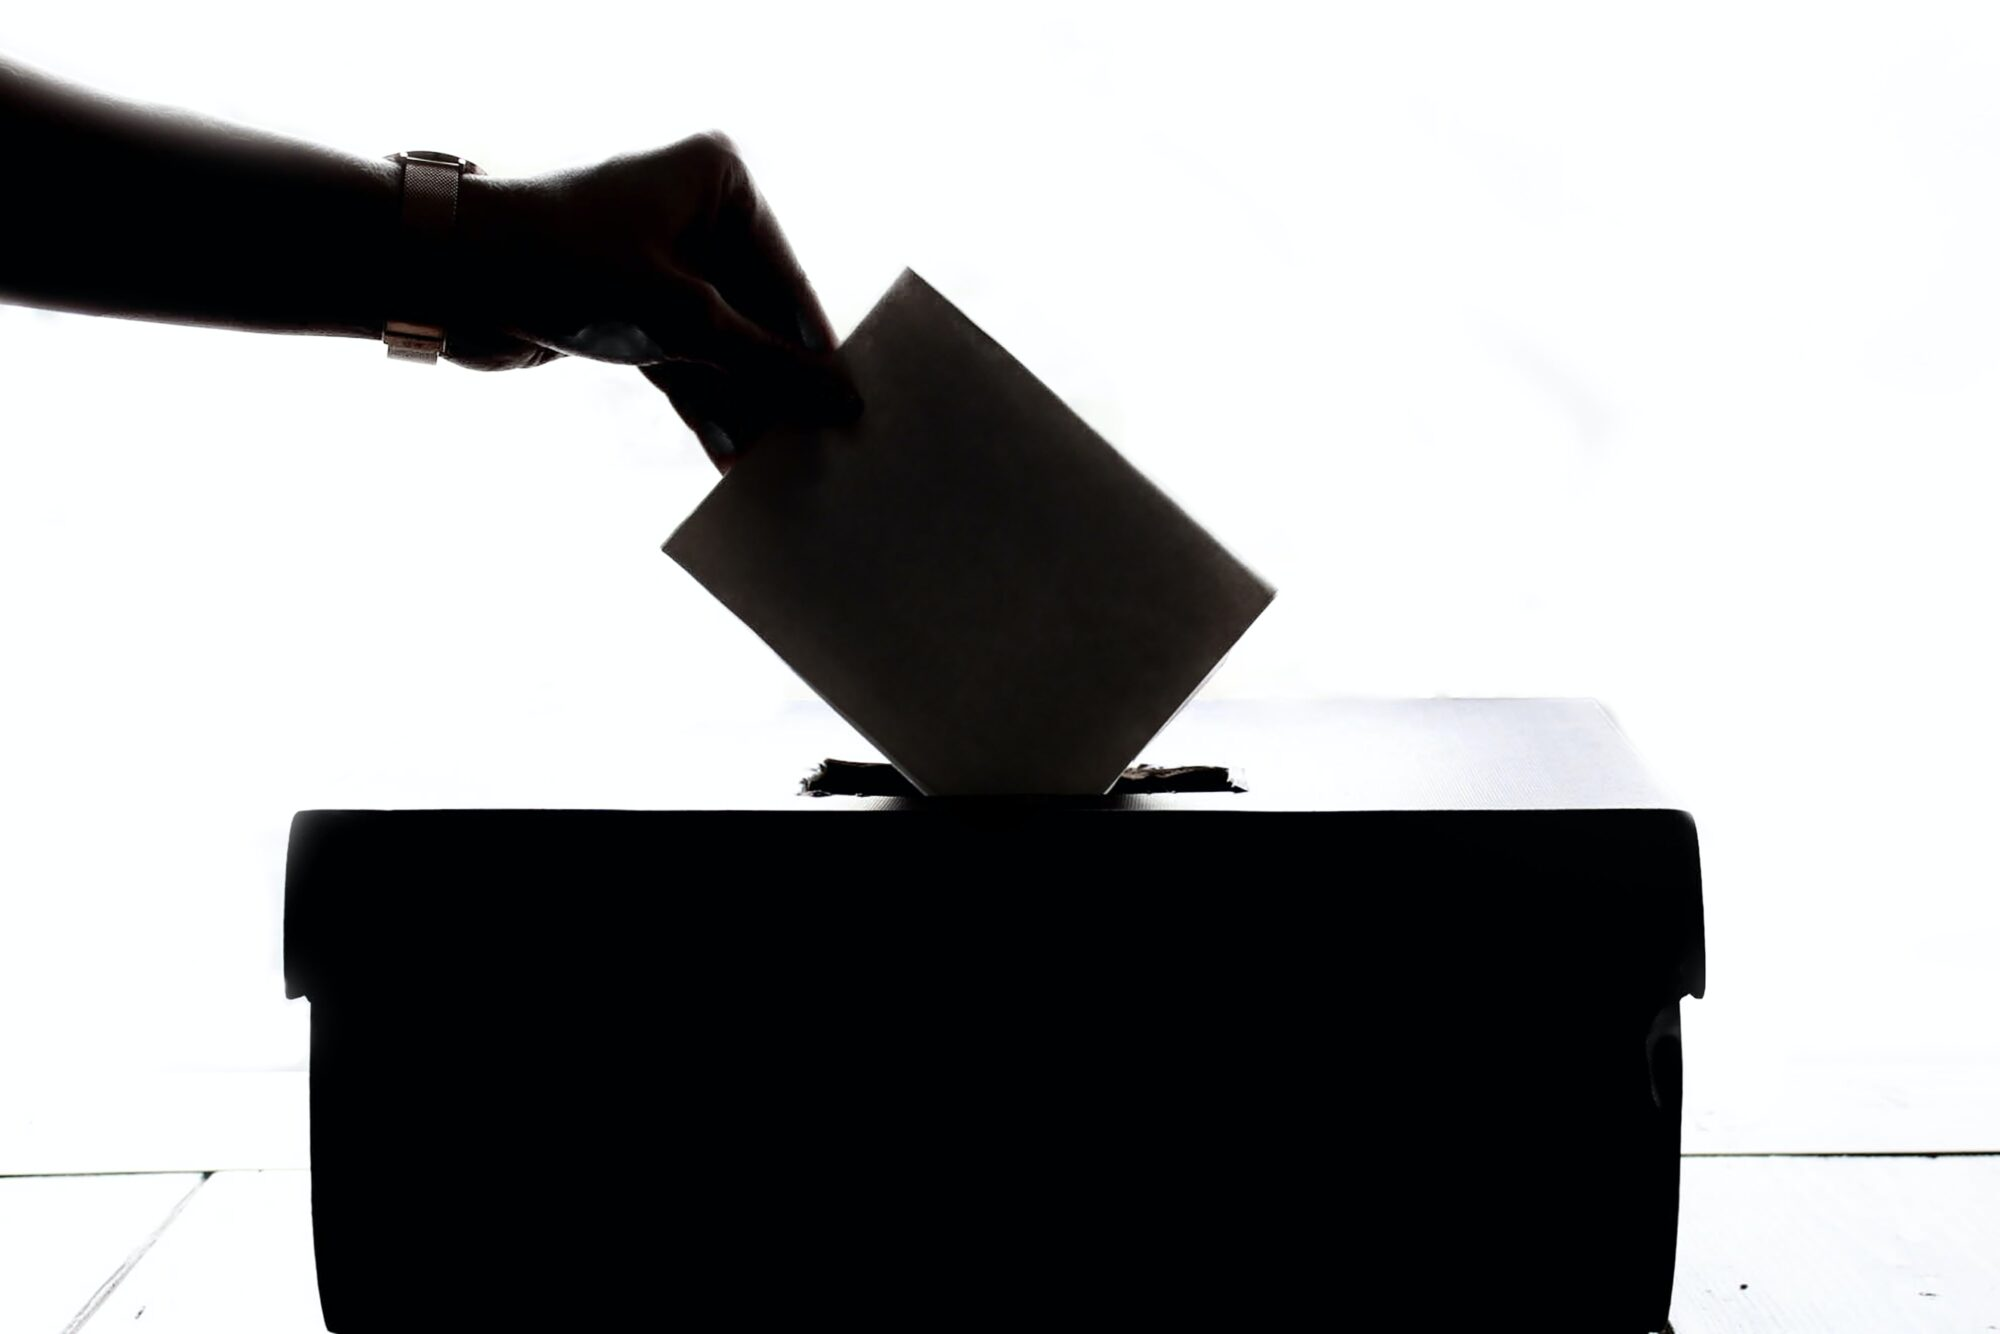 THE PRE-ELECTION HAS NO EFFECT ON PARTY PREFERENCES